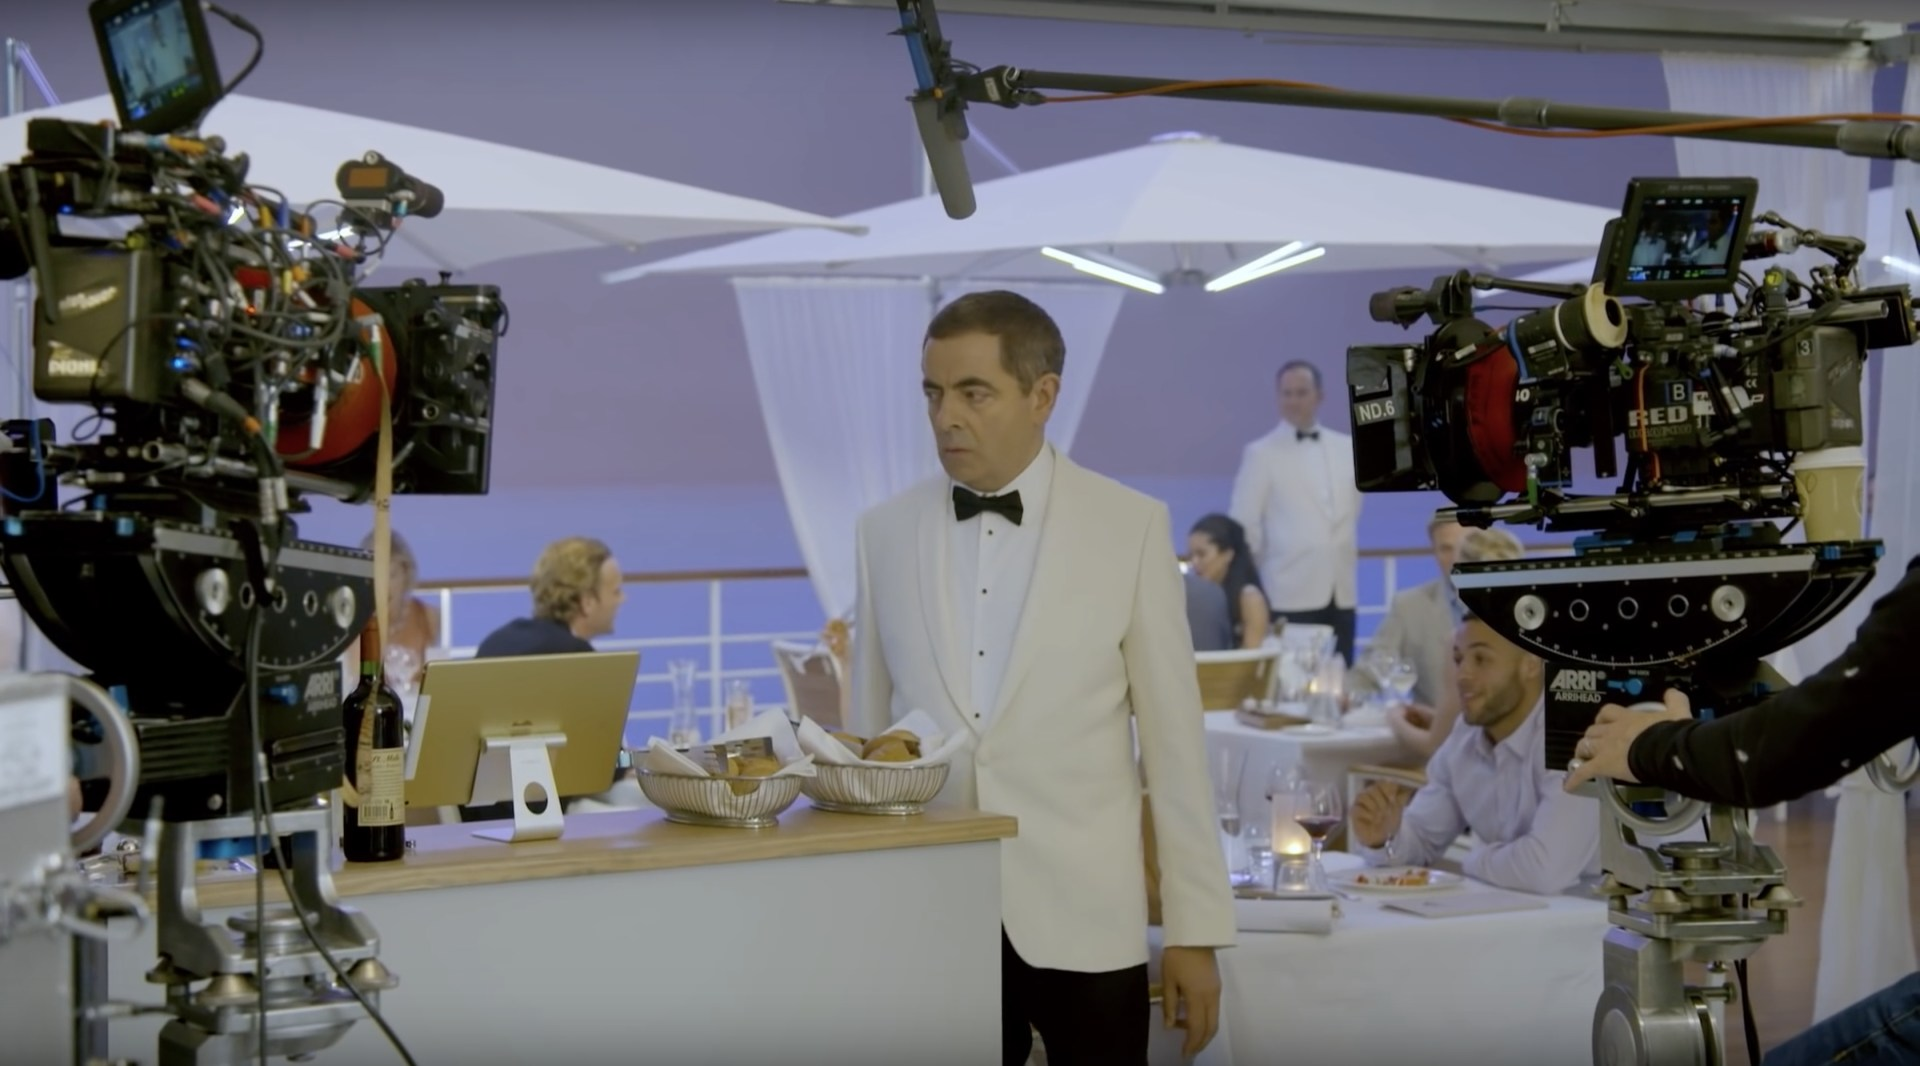 Johnny English Strikes Again Behind the Scenes